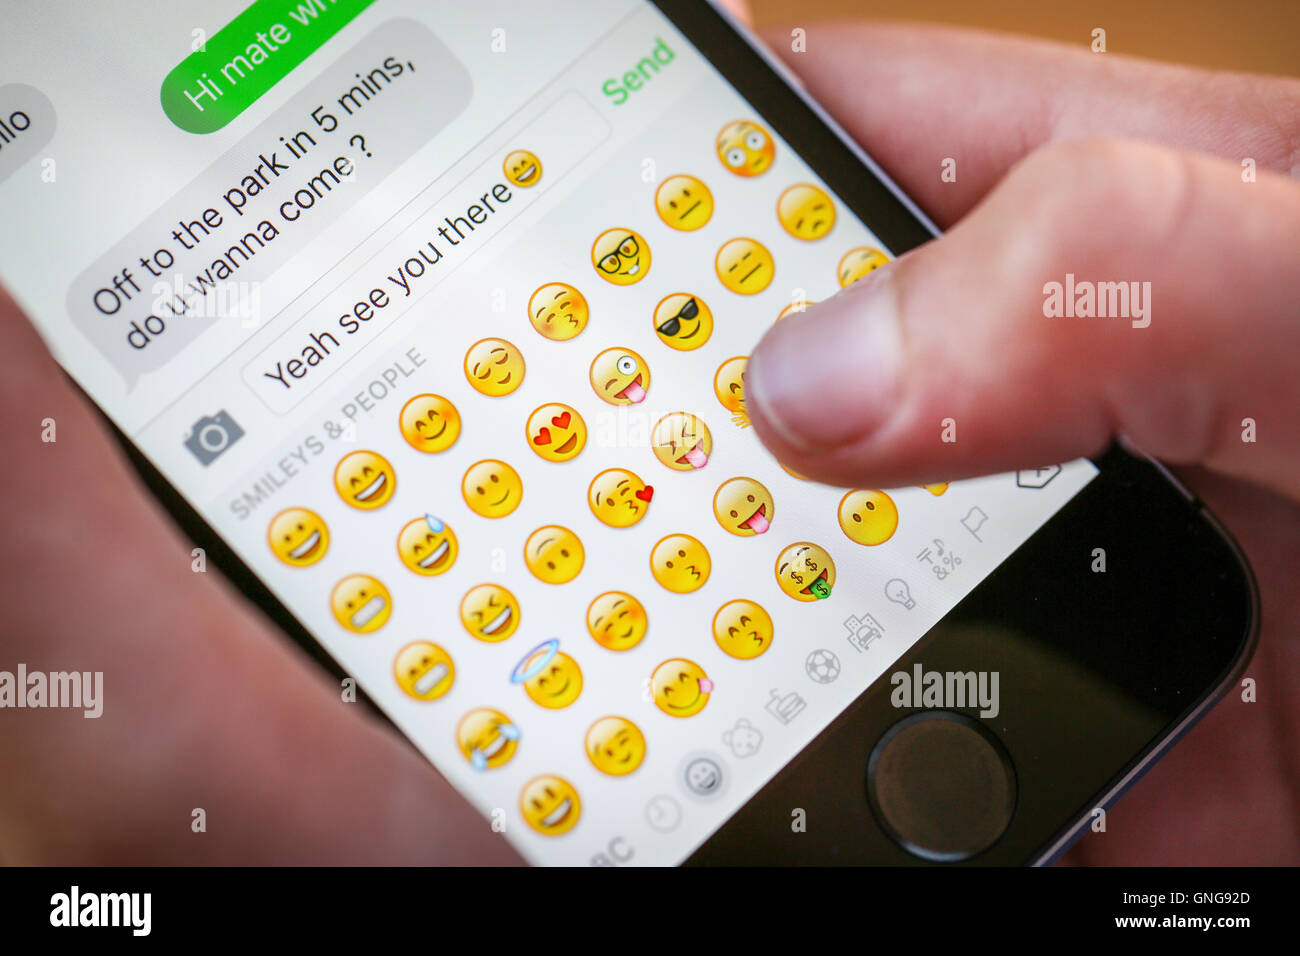 A teenage boy using an emoji whilst texting on his iphone - Stock Image